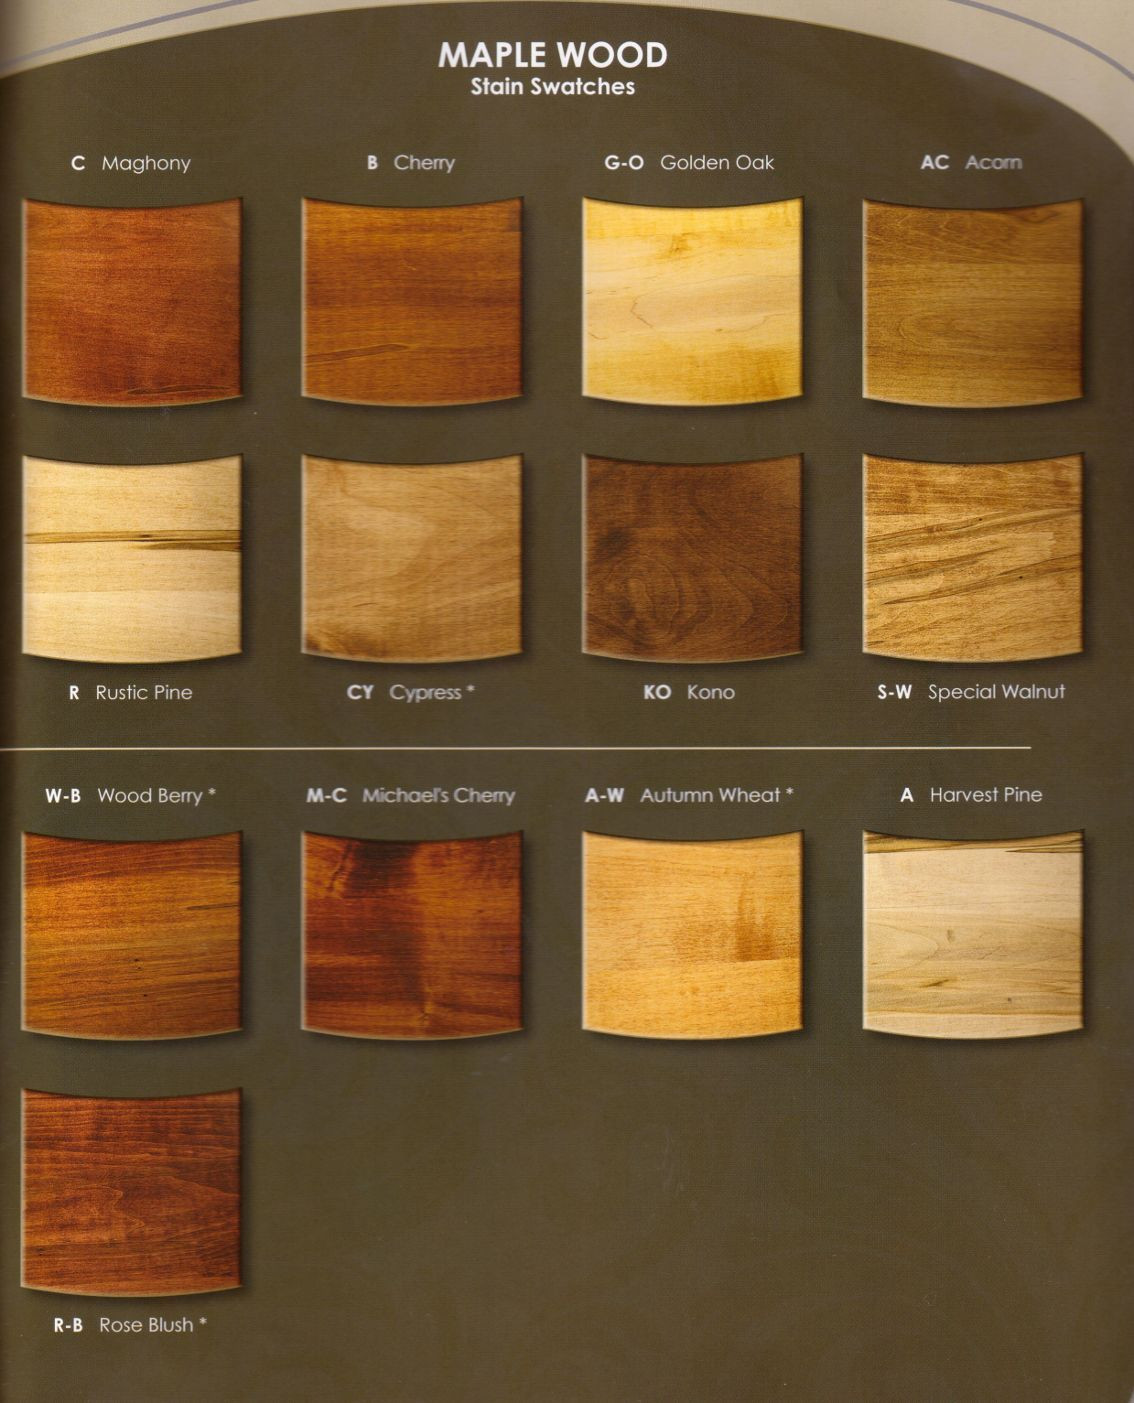 best hardwood floor stain colors of minwax stain on maple google search boys room decor pinterest in minwax stain on maple google search minwax stain colors hardwood floor stain colors